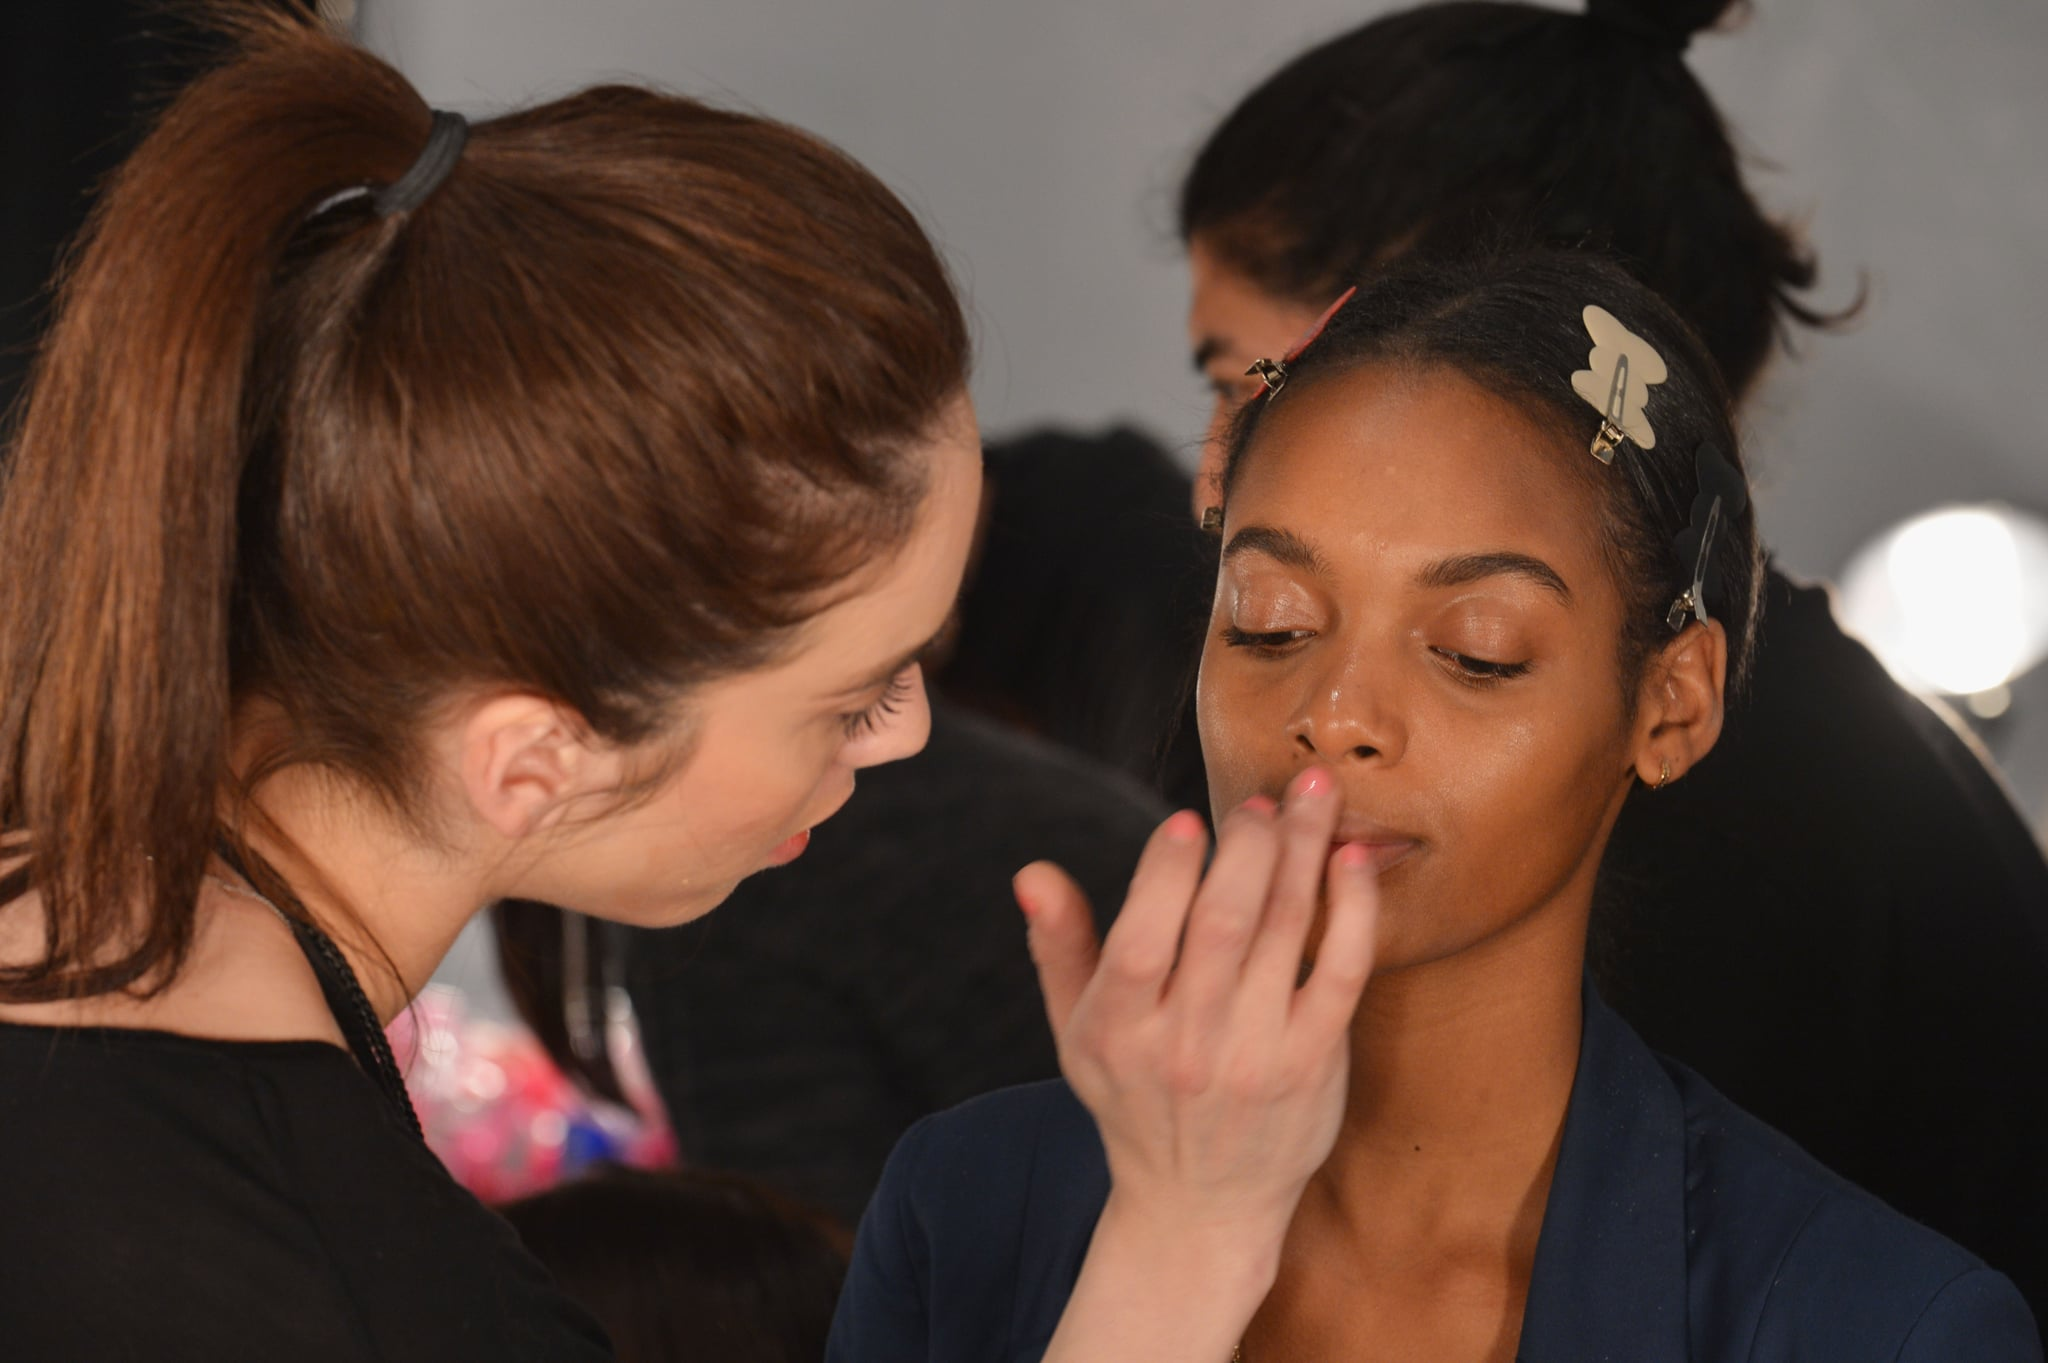 """""""It's pretty grunge,"""" lead makeup artist Romy Soleimani said. """"The collection had futuristic and sporty elements. We used the gloss on the cheeks and on the eyelid, so it's a little bit sweaty but also reflective."""" Her primary product was MAC Clear Lipglass and a bit of Haute and Naughty mascara. """""""